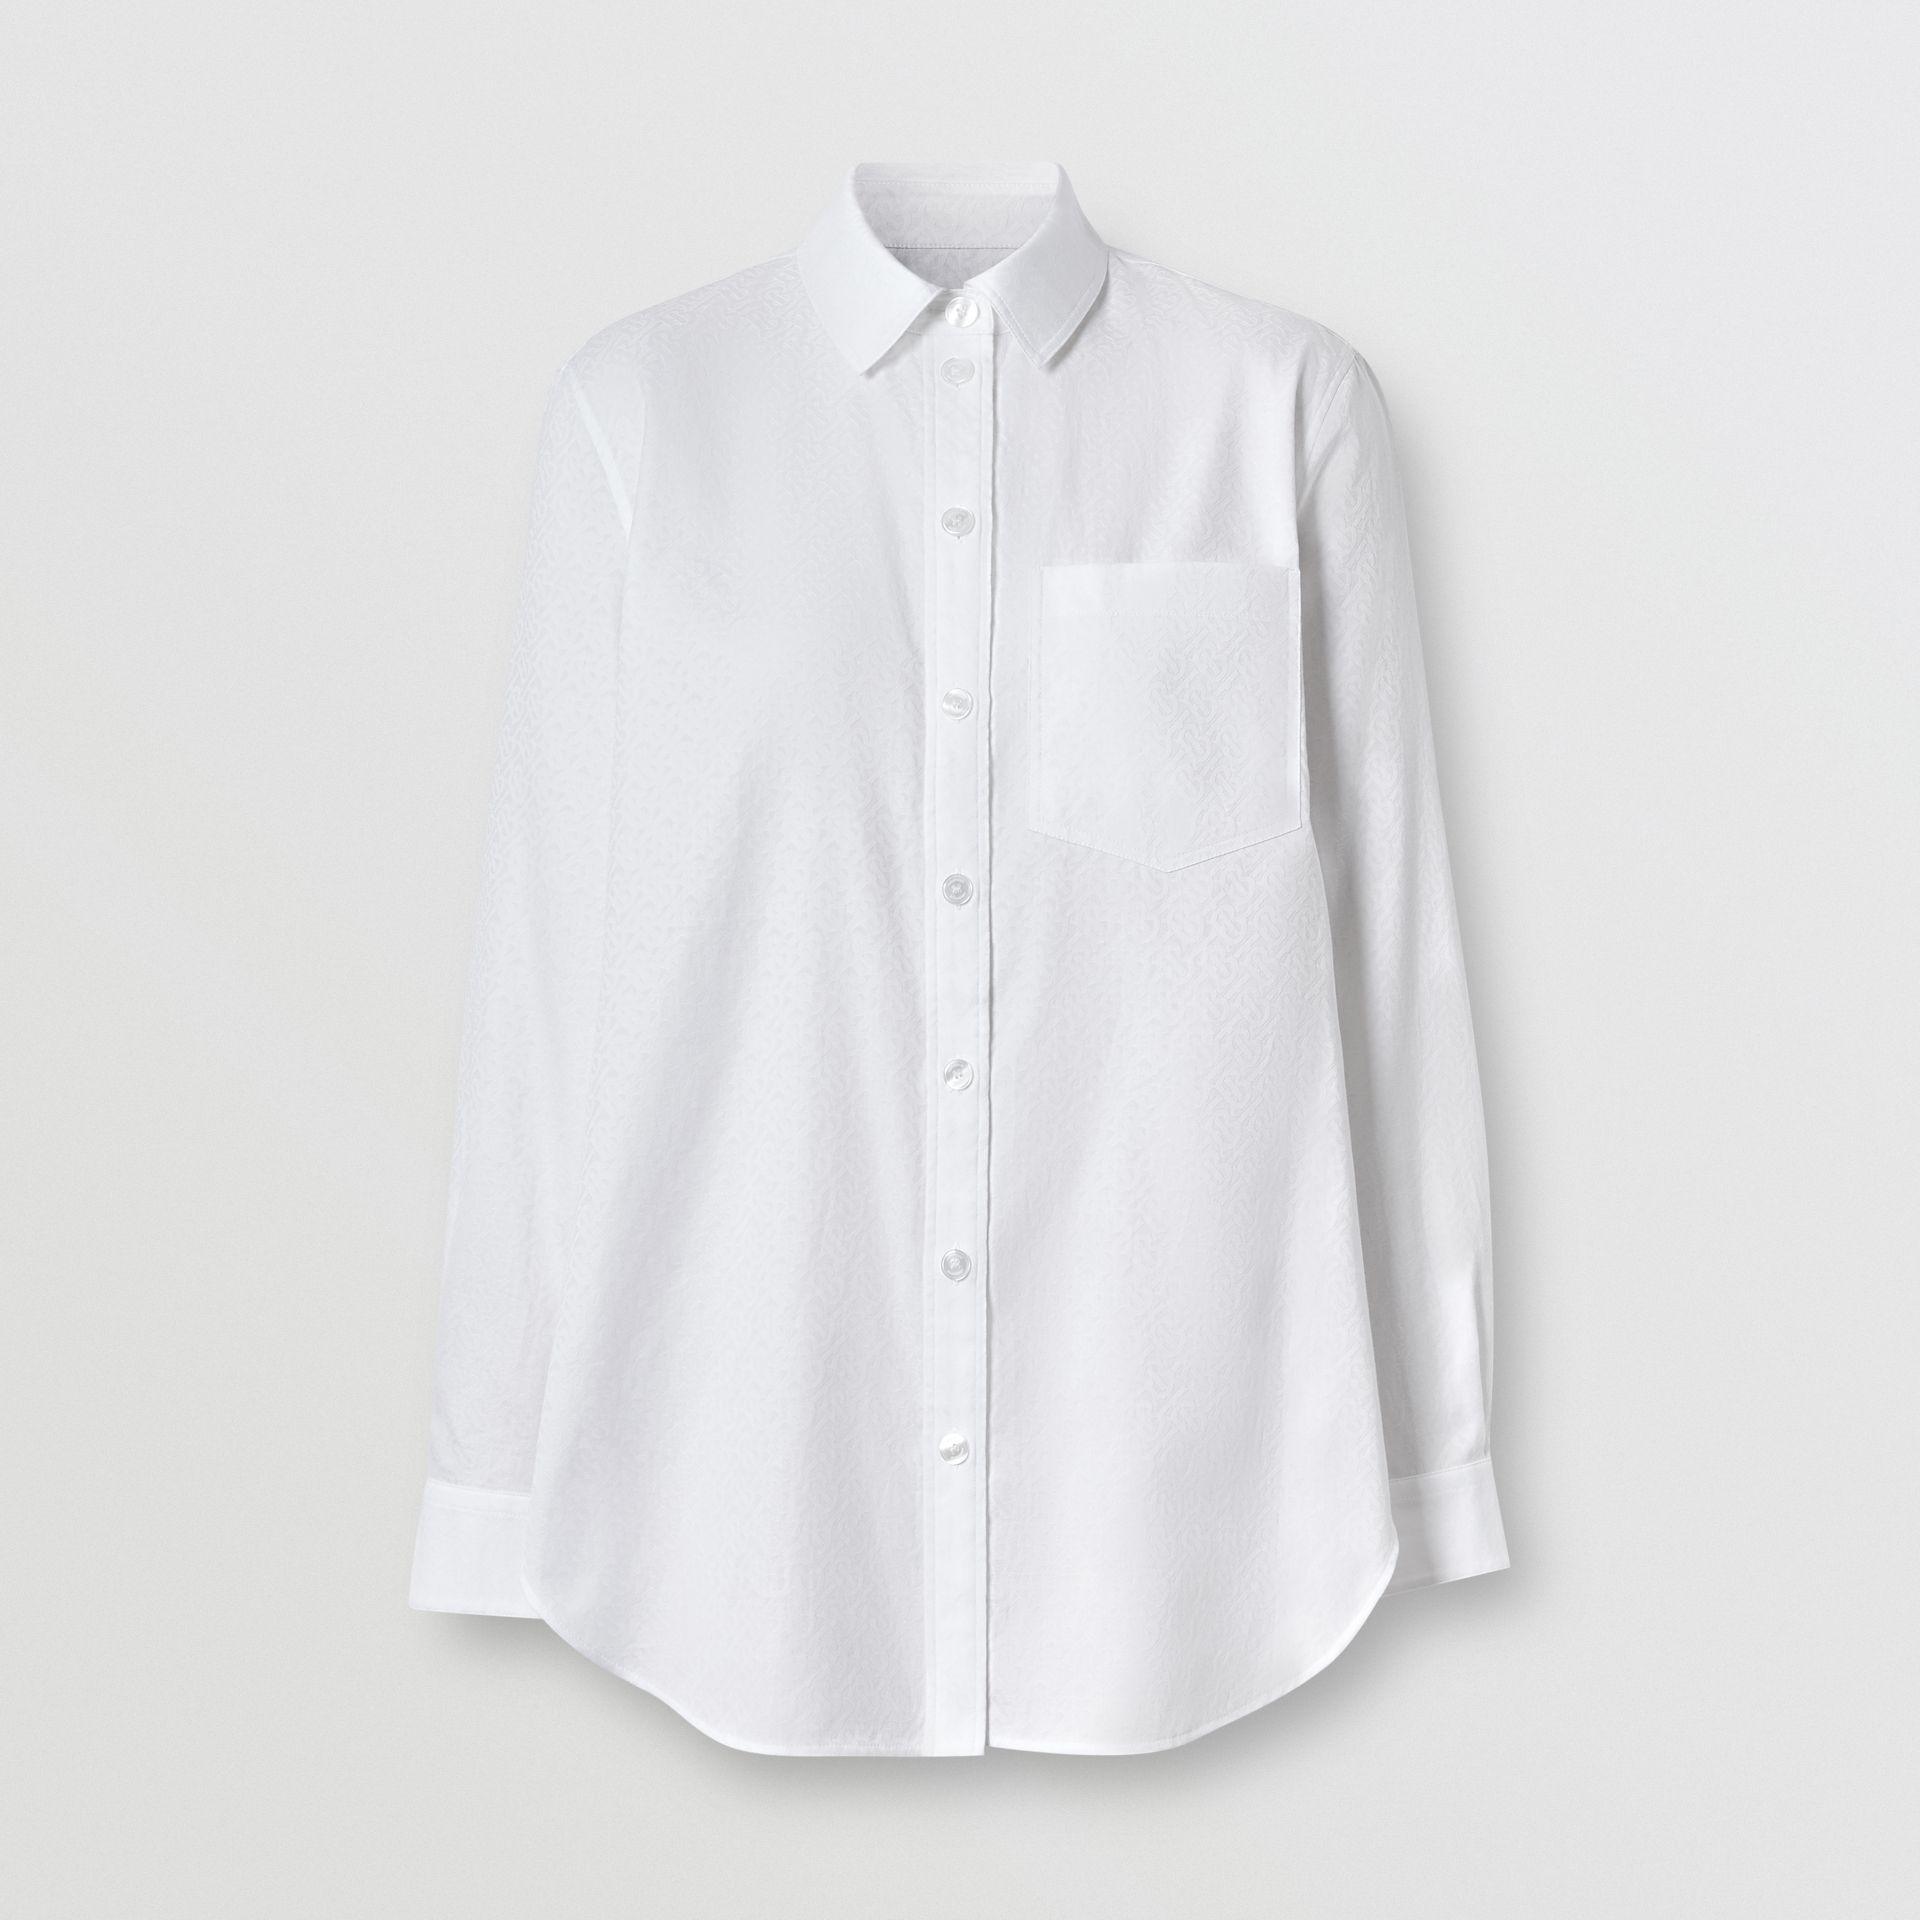 Monogram Cotton Jacquard Shirt in Optic White - Women | Burberry Canada - gallery image 3